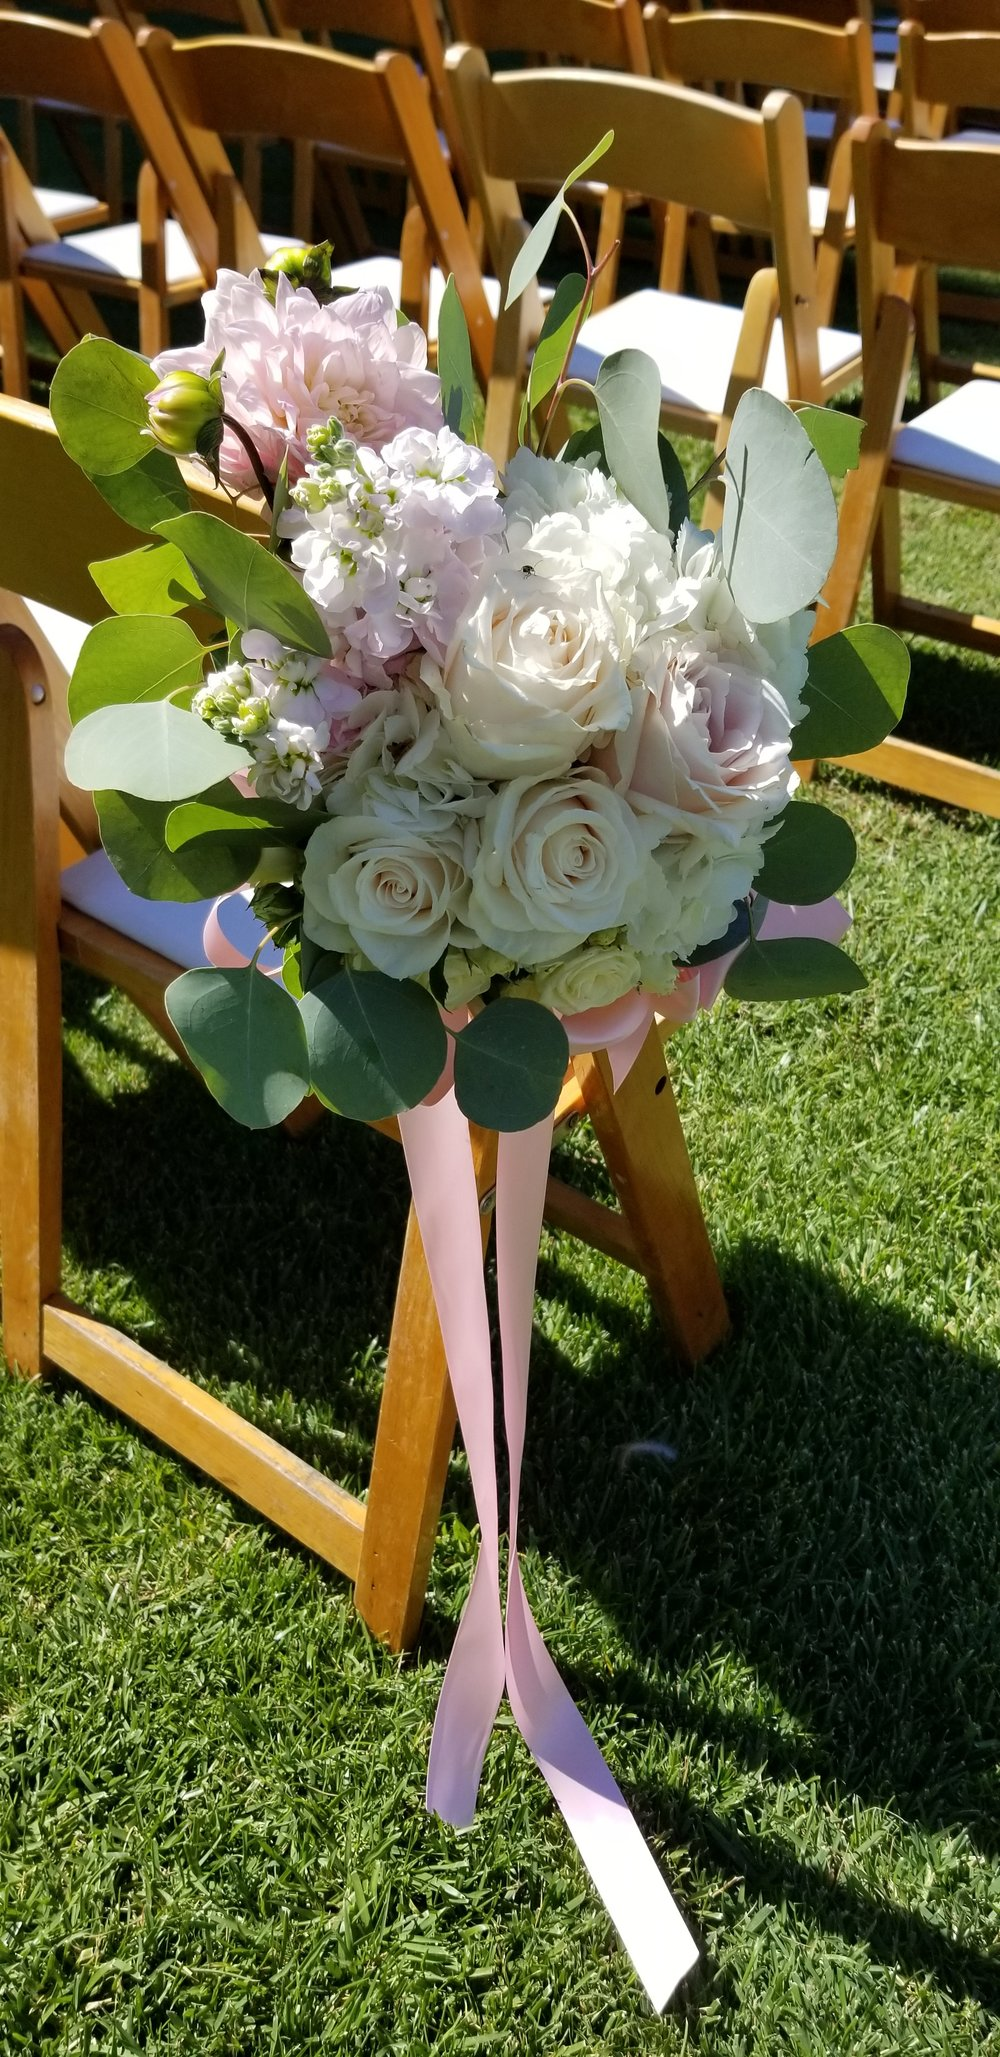 Wedding aisle bouquet in blush and white with draping greens, tied to aisle chairs with flowing ribbon. Trentadue Winery wedding ceremony